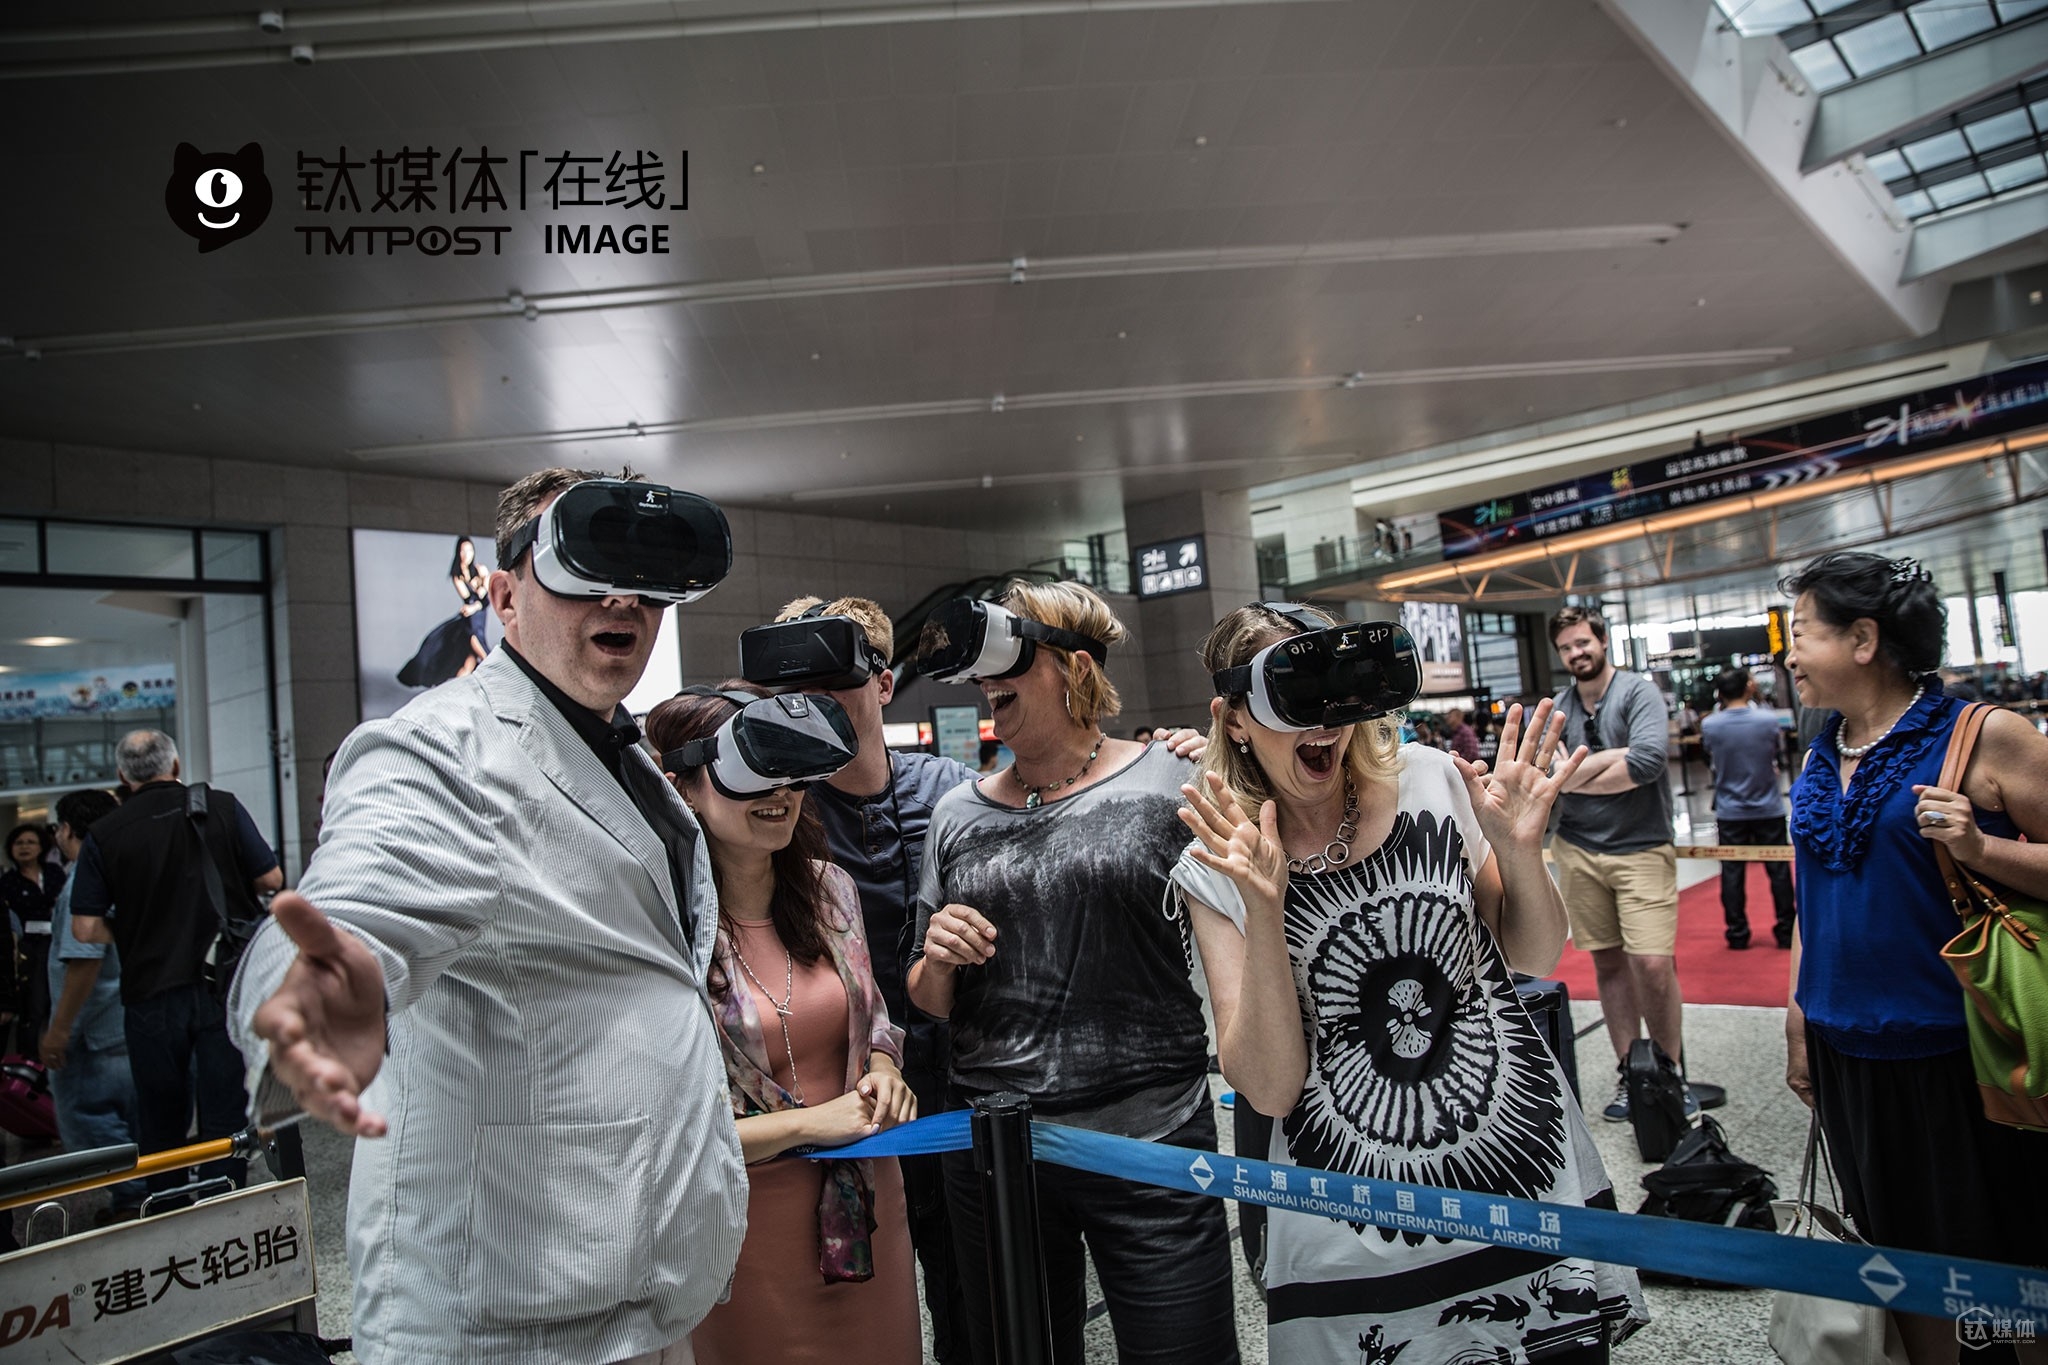 On the way from Chongqing to attend a VR Summit in Chongqing, a VR developer (the person on the left) invited everybody to wear a pair of VR glasses and took a picture together. American entrepreneurs who accompanied the delegation were all focused on VR/AR. In the week-long visit, they were all eager to find potential investors and cooperation opportunities, and held several road shows along the way.